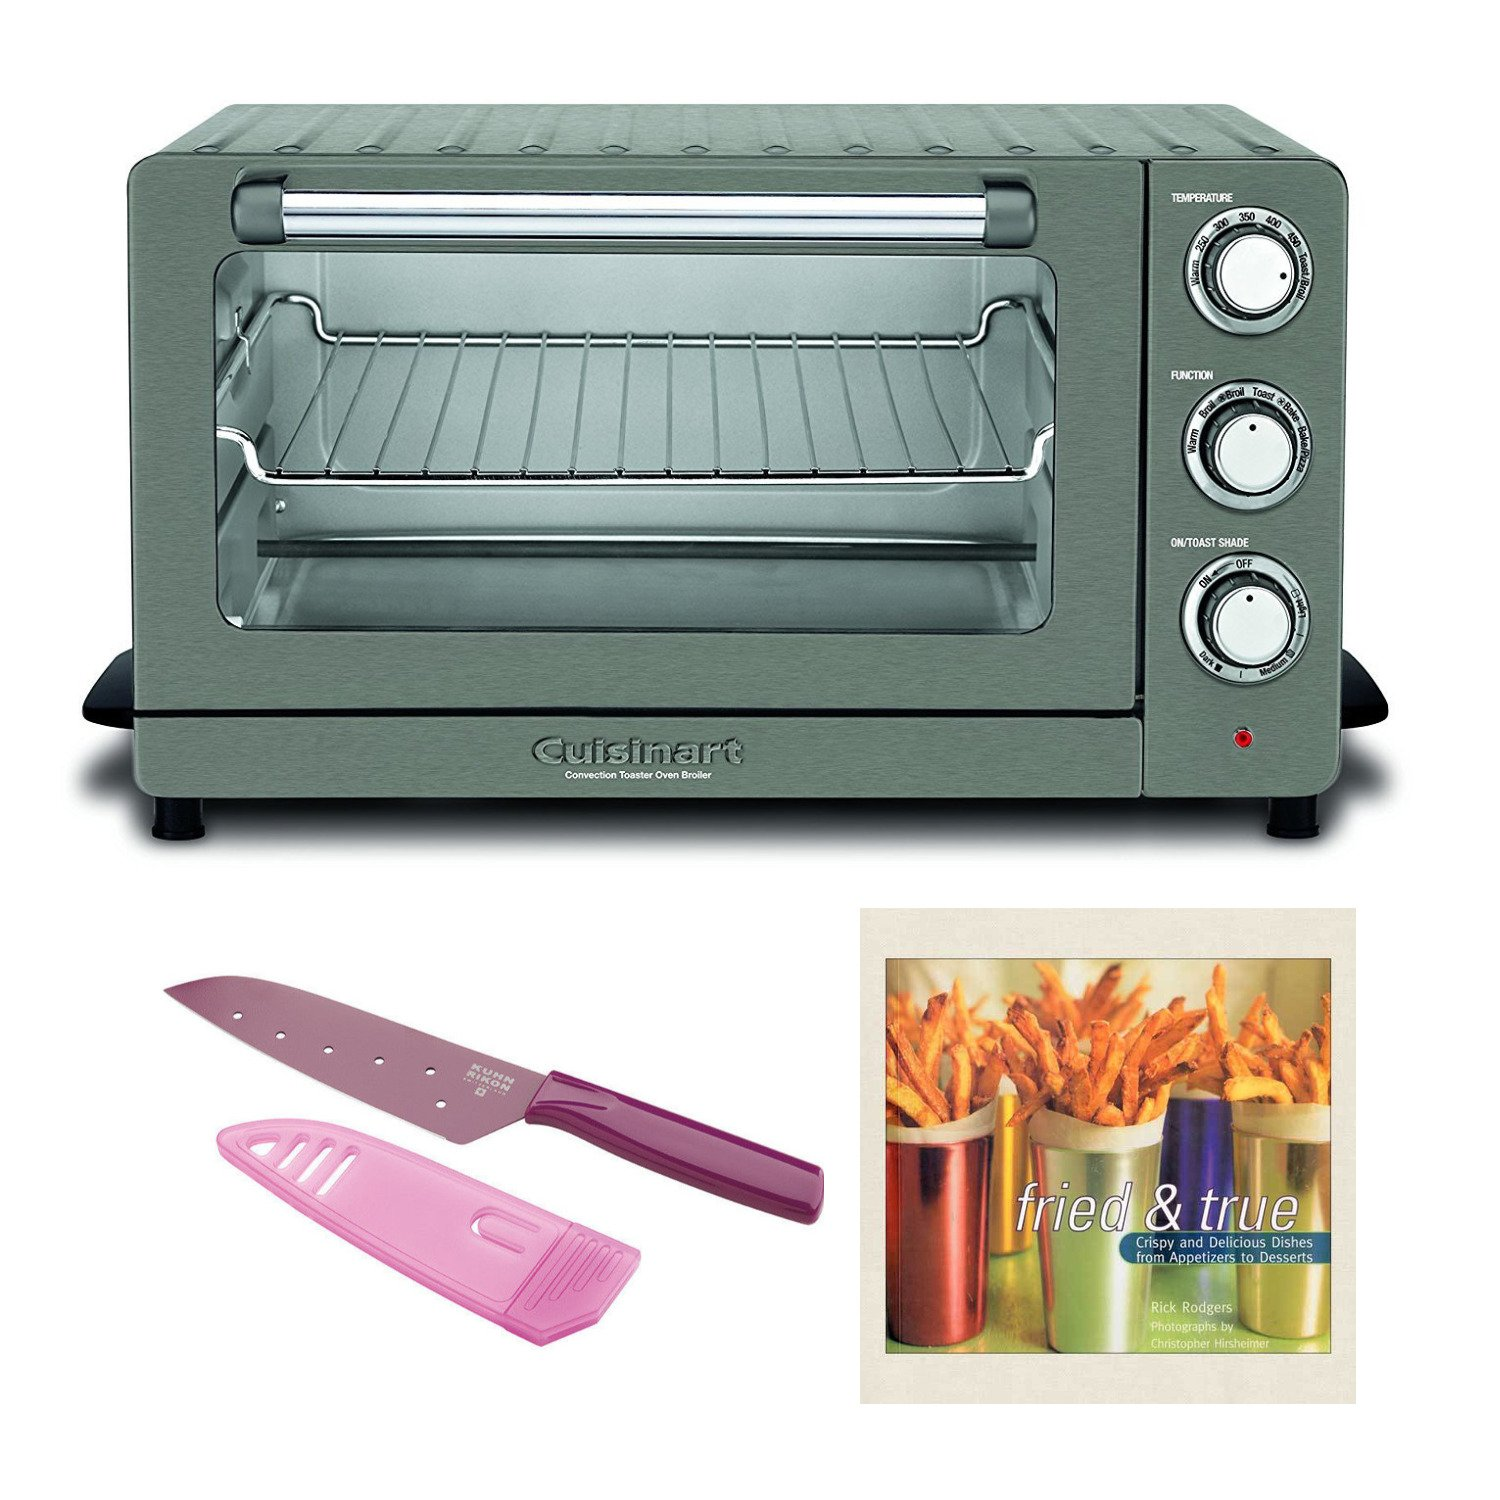 Cuisinart TOB-60N1BKS2 Convection Toaster Oven, Black Stainless Includes Kuhn Rikon Small Santoku Colori Knife (Purple) and Cookbook